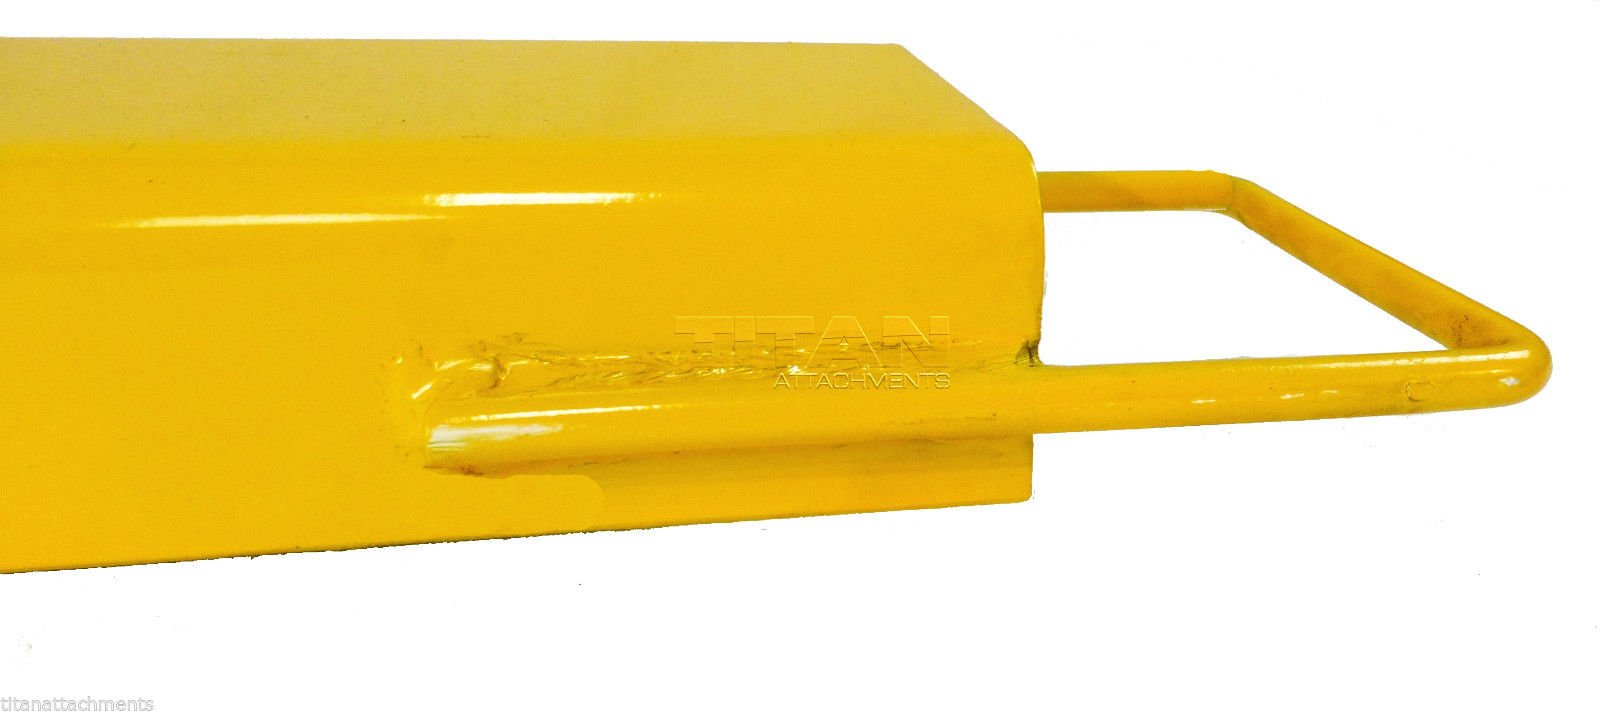 84'' Titan Pallet Fork Extensions for forklifts lift truck slide on steel FX84 by Titan Attachments (Image #5)